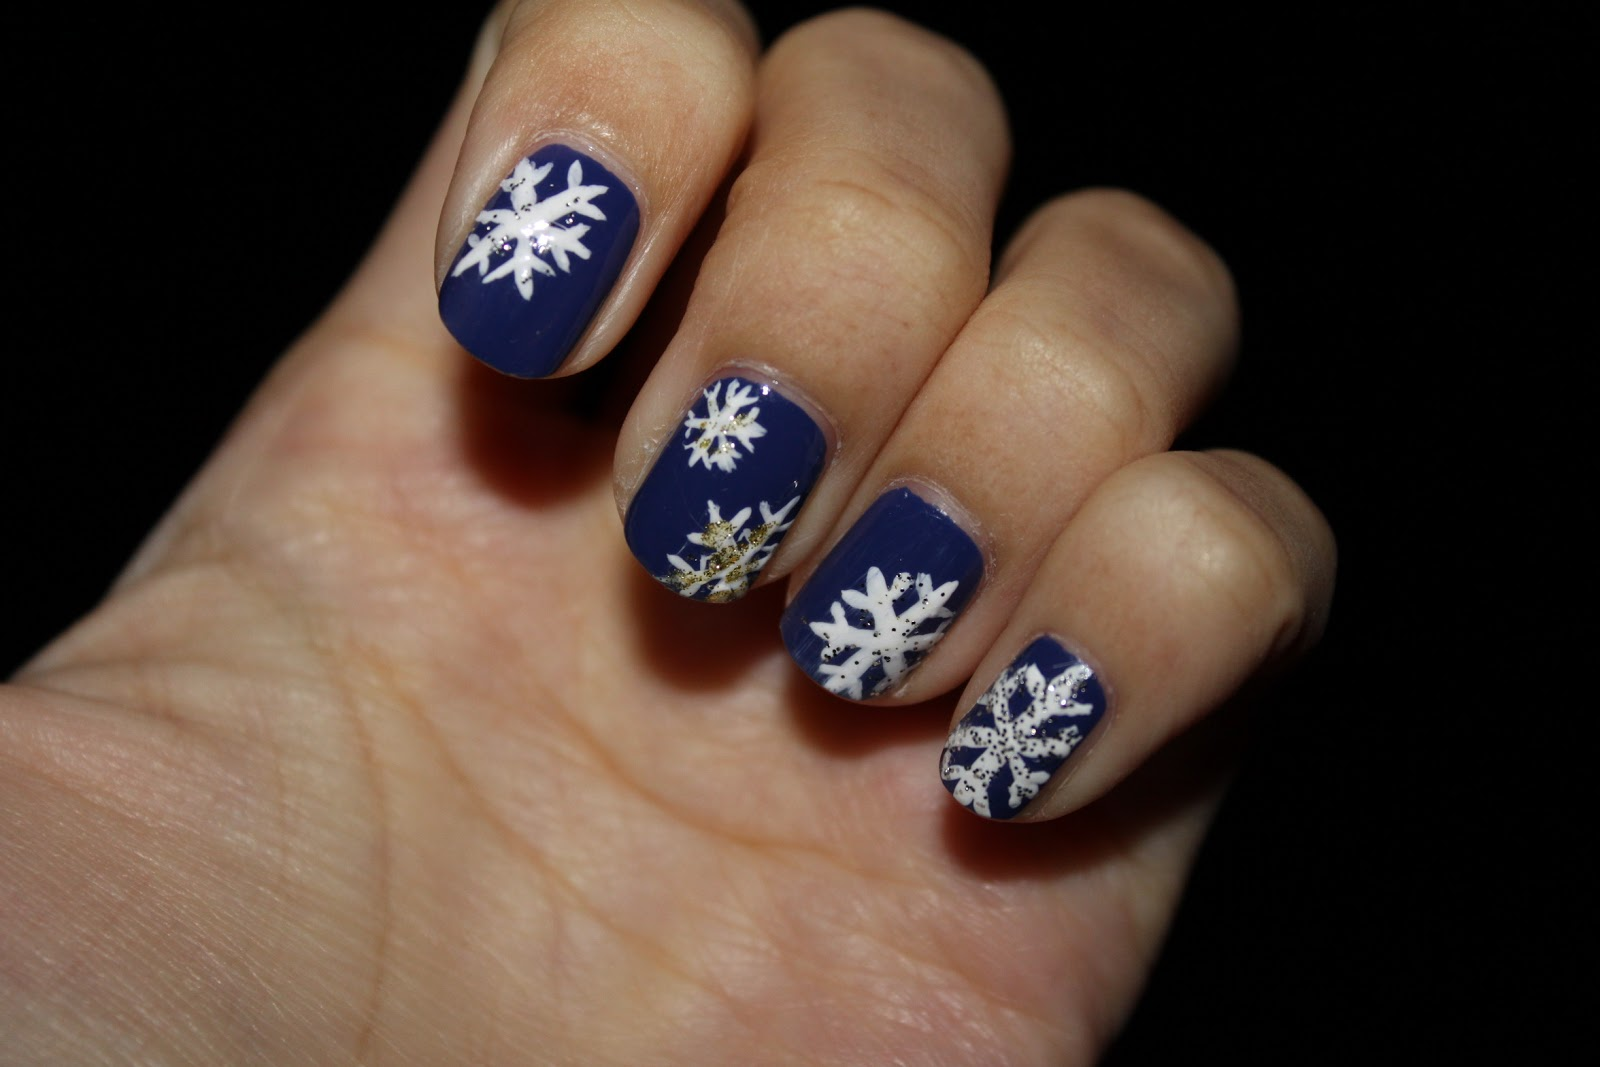 sara nail snowflakes nail art winter snow nail easy snow nail art. Black Bedroom Furniture Sets. Home Design Ideas